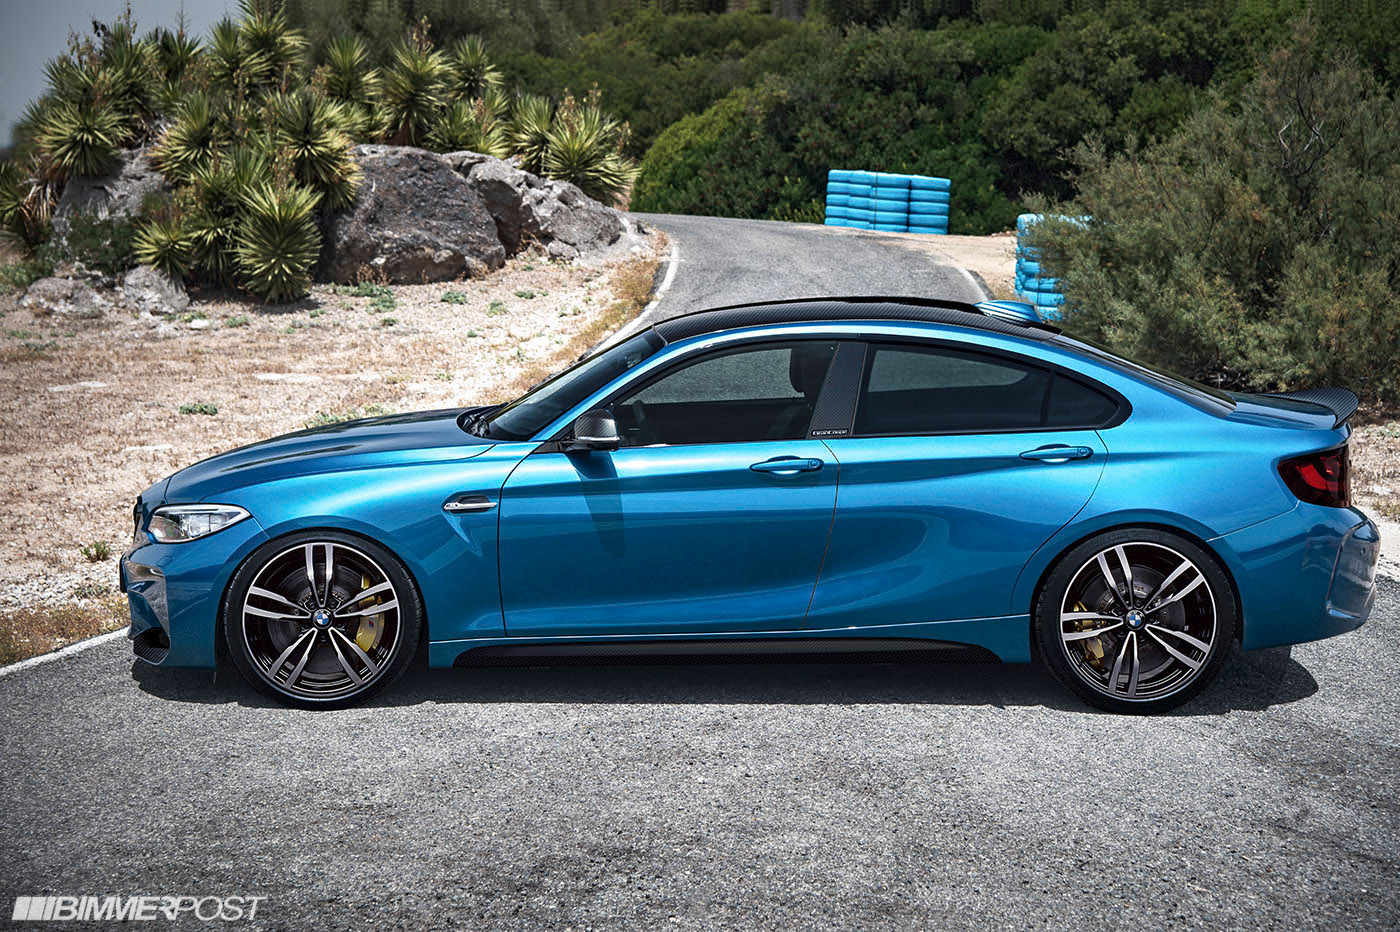 2019 BMW 135i Coupe photo - 4